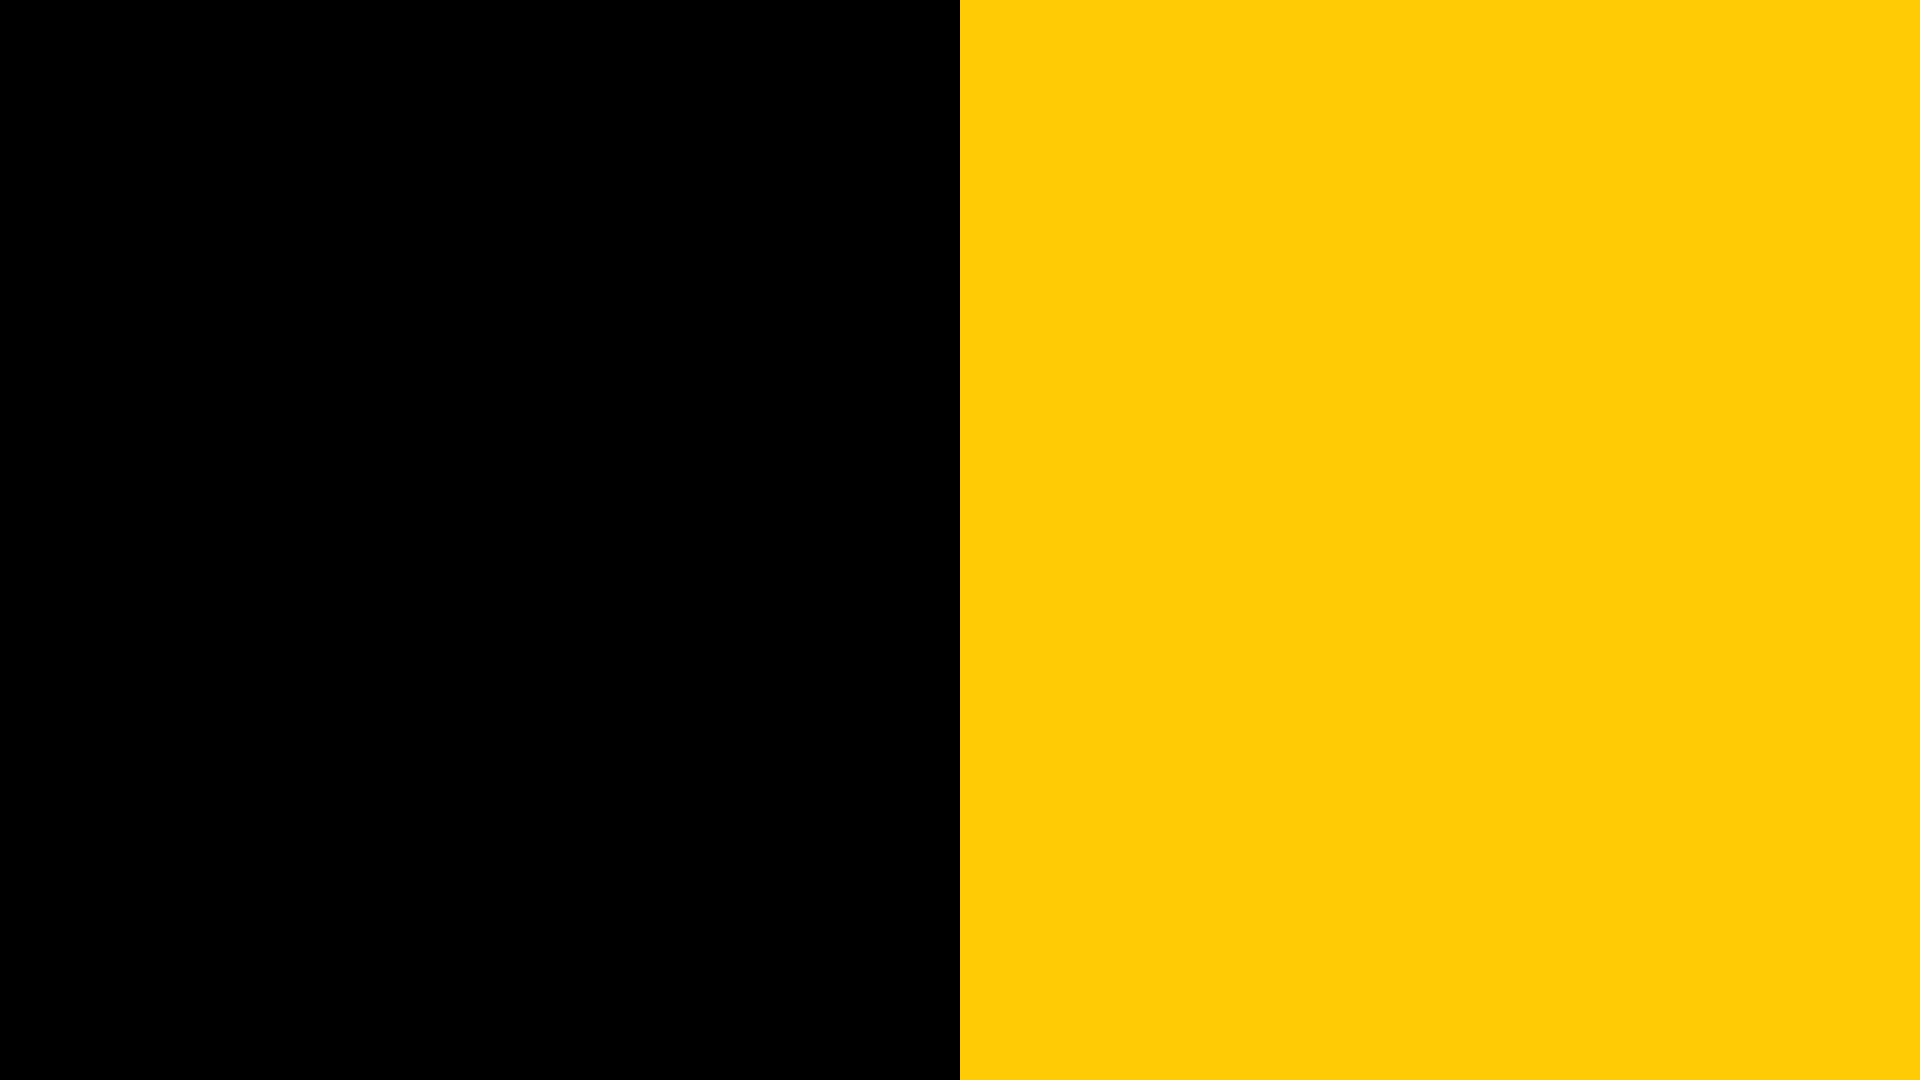 1920x1080 - Yellow and Black 6